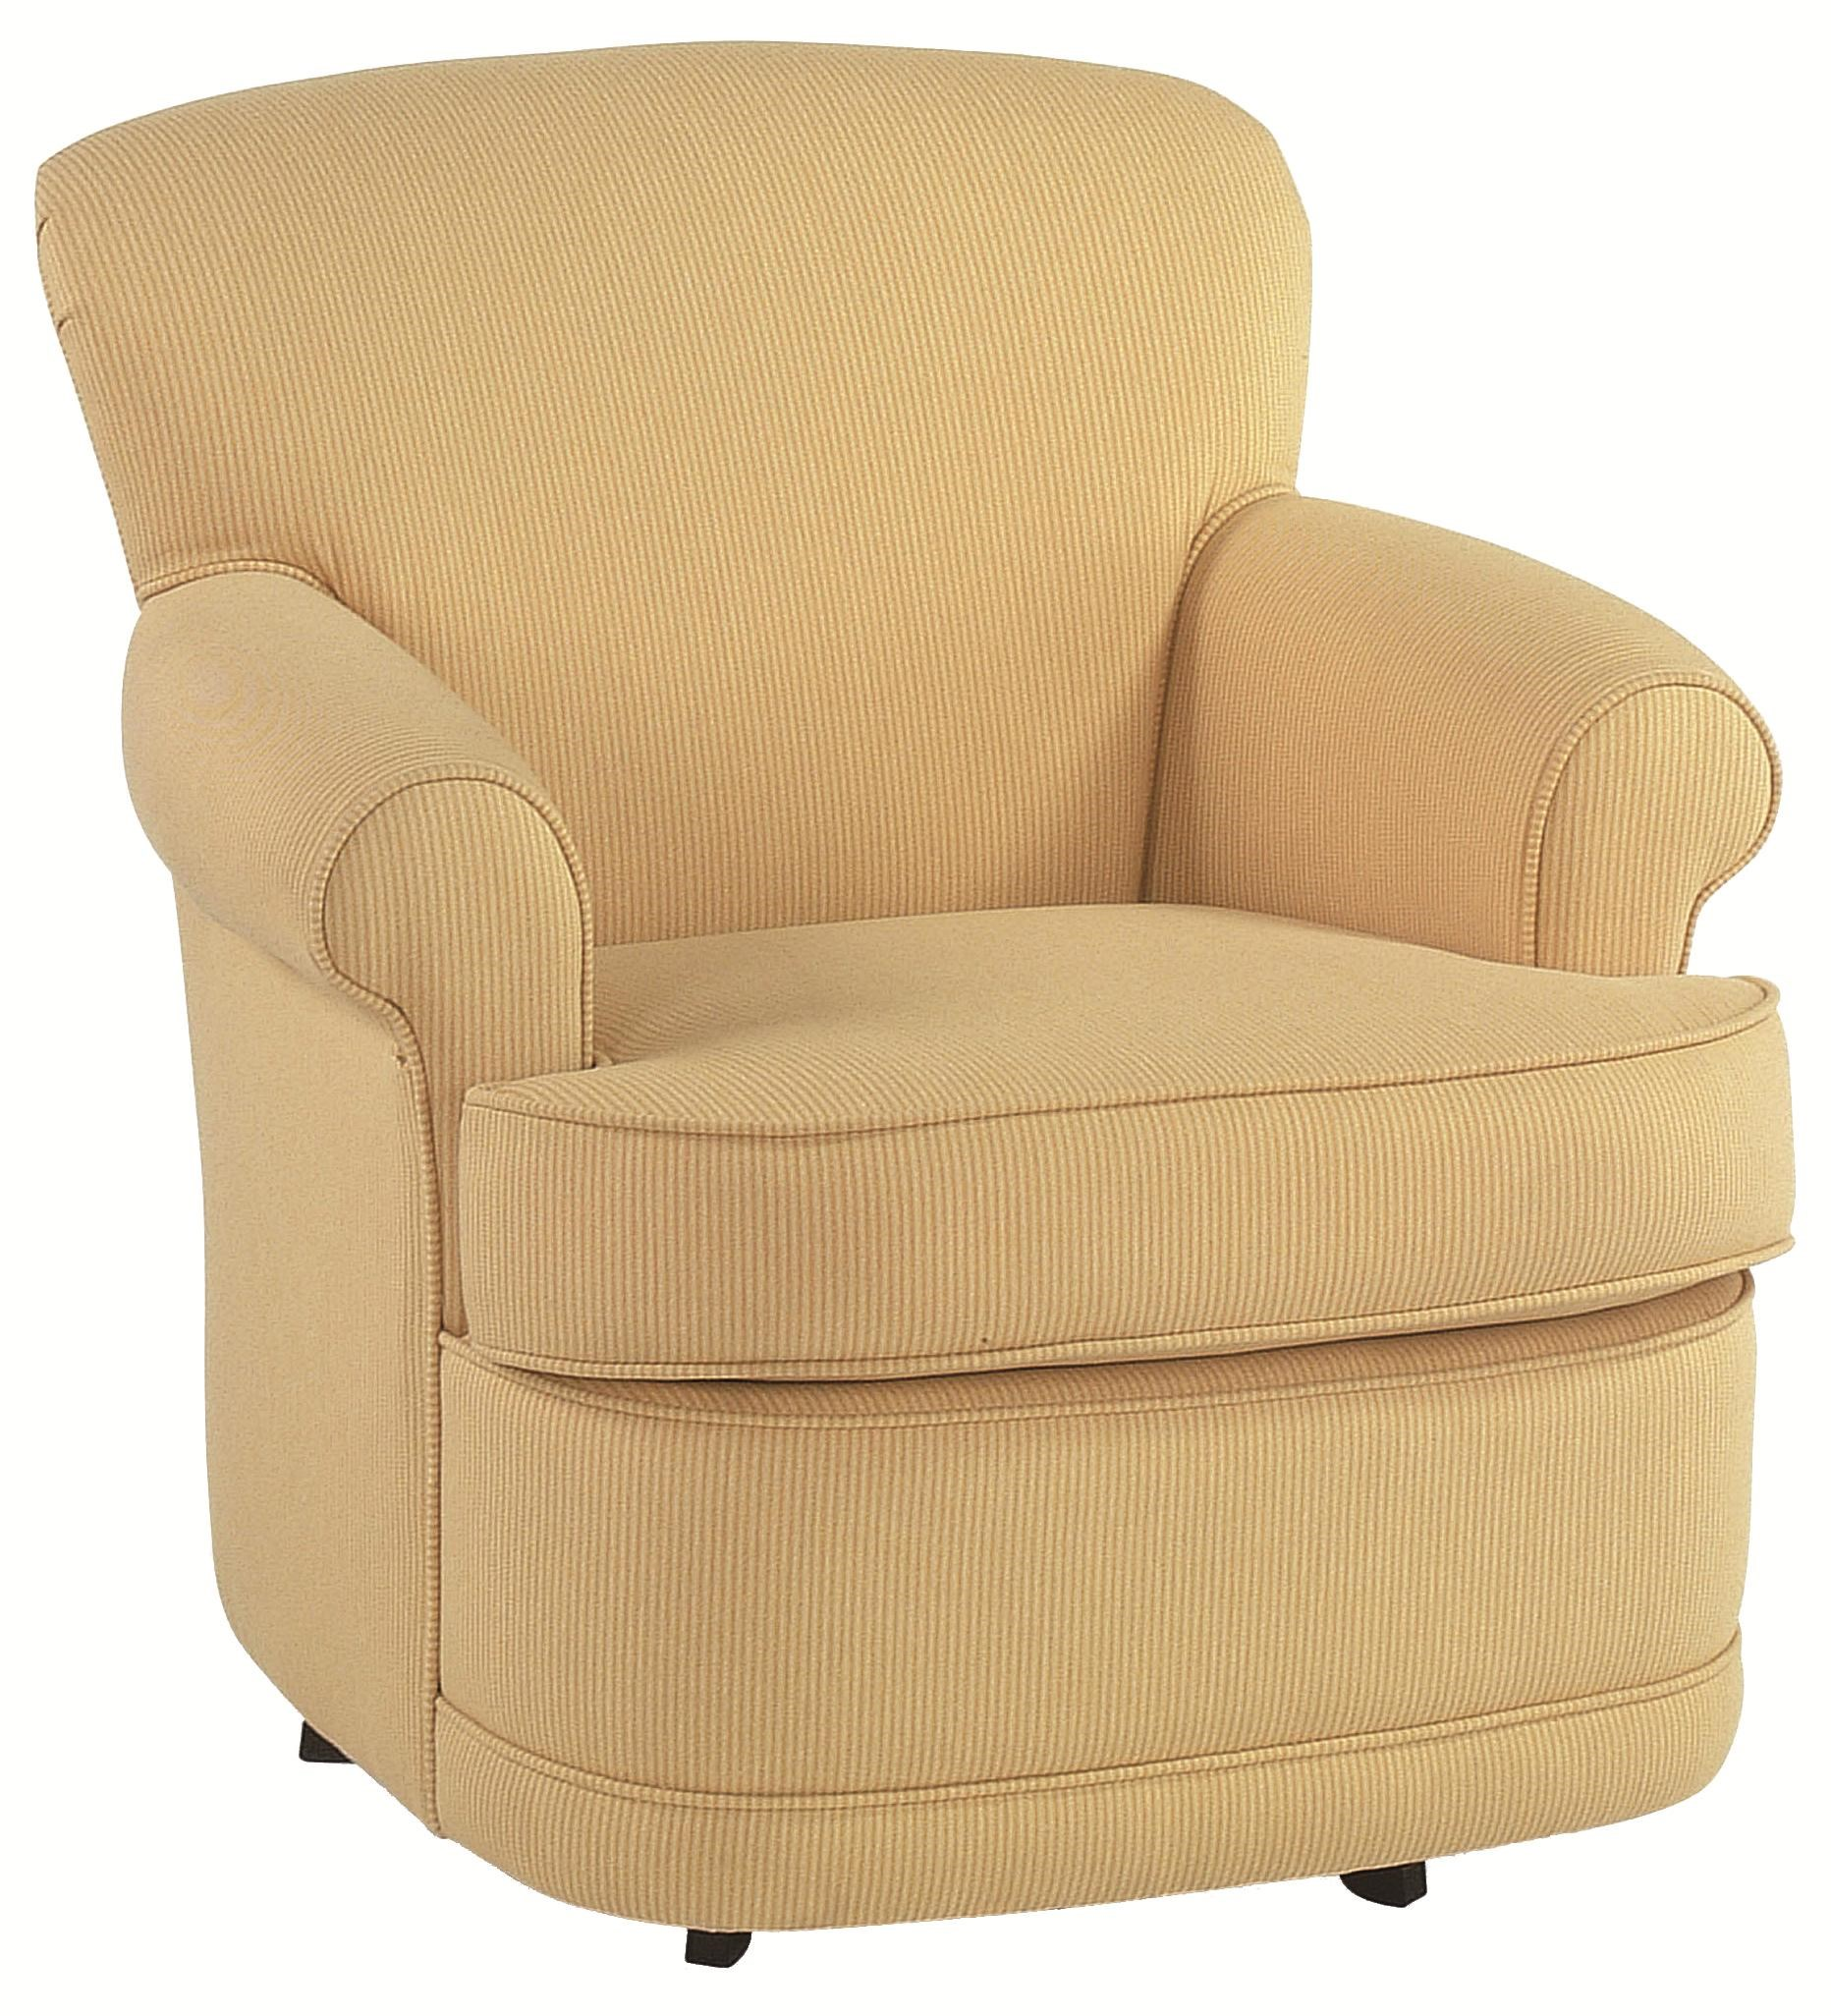 Braxton Culler Accent ChairsTraditional Upholstered Swivel Chair